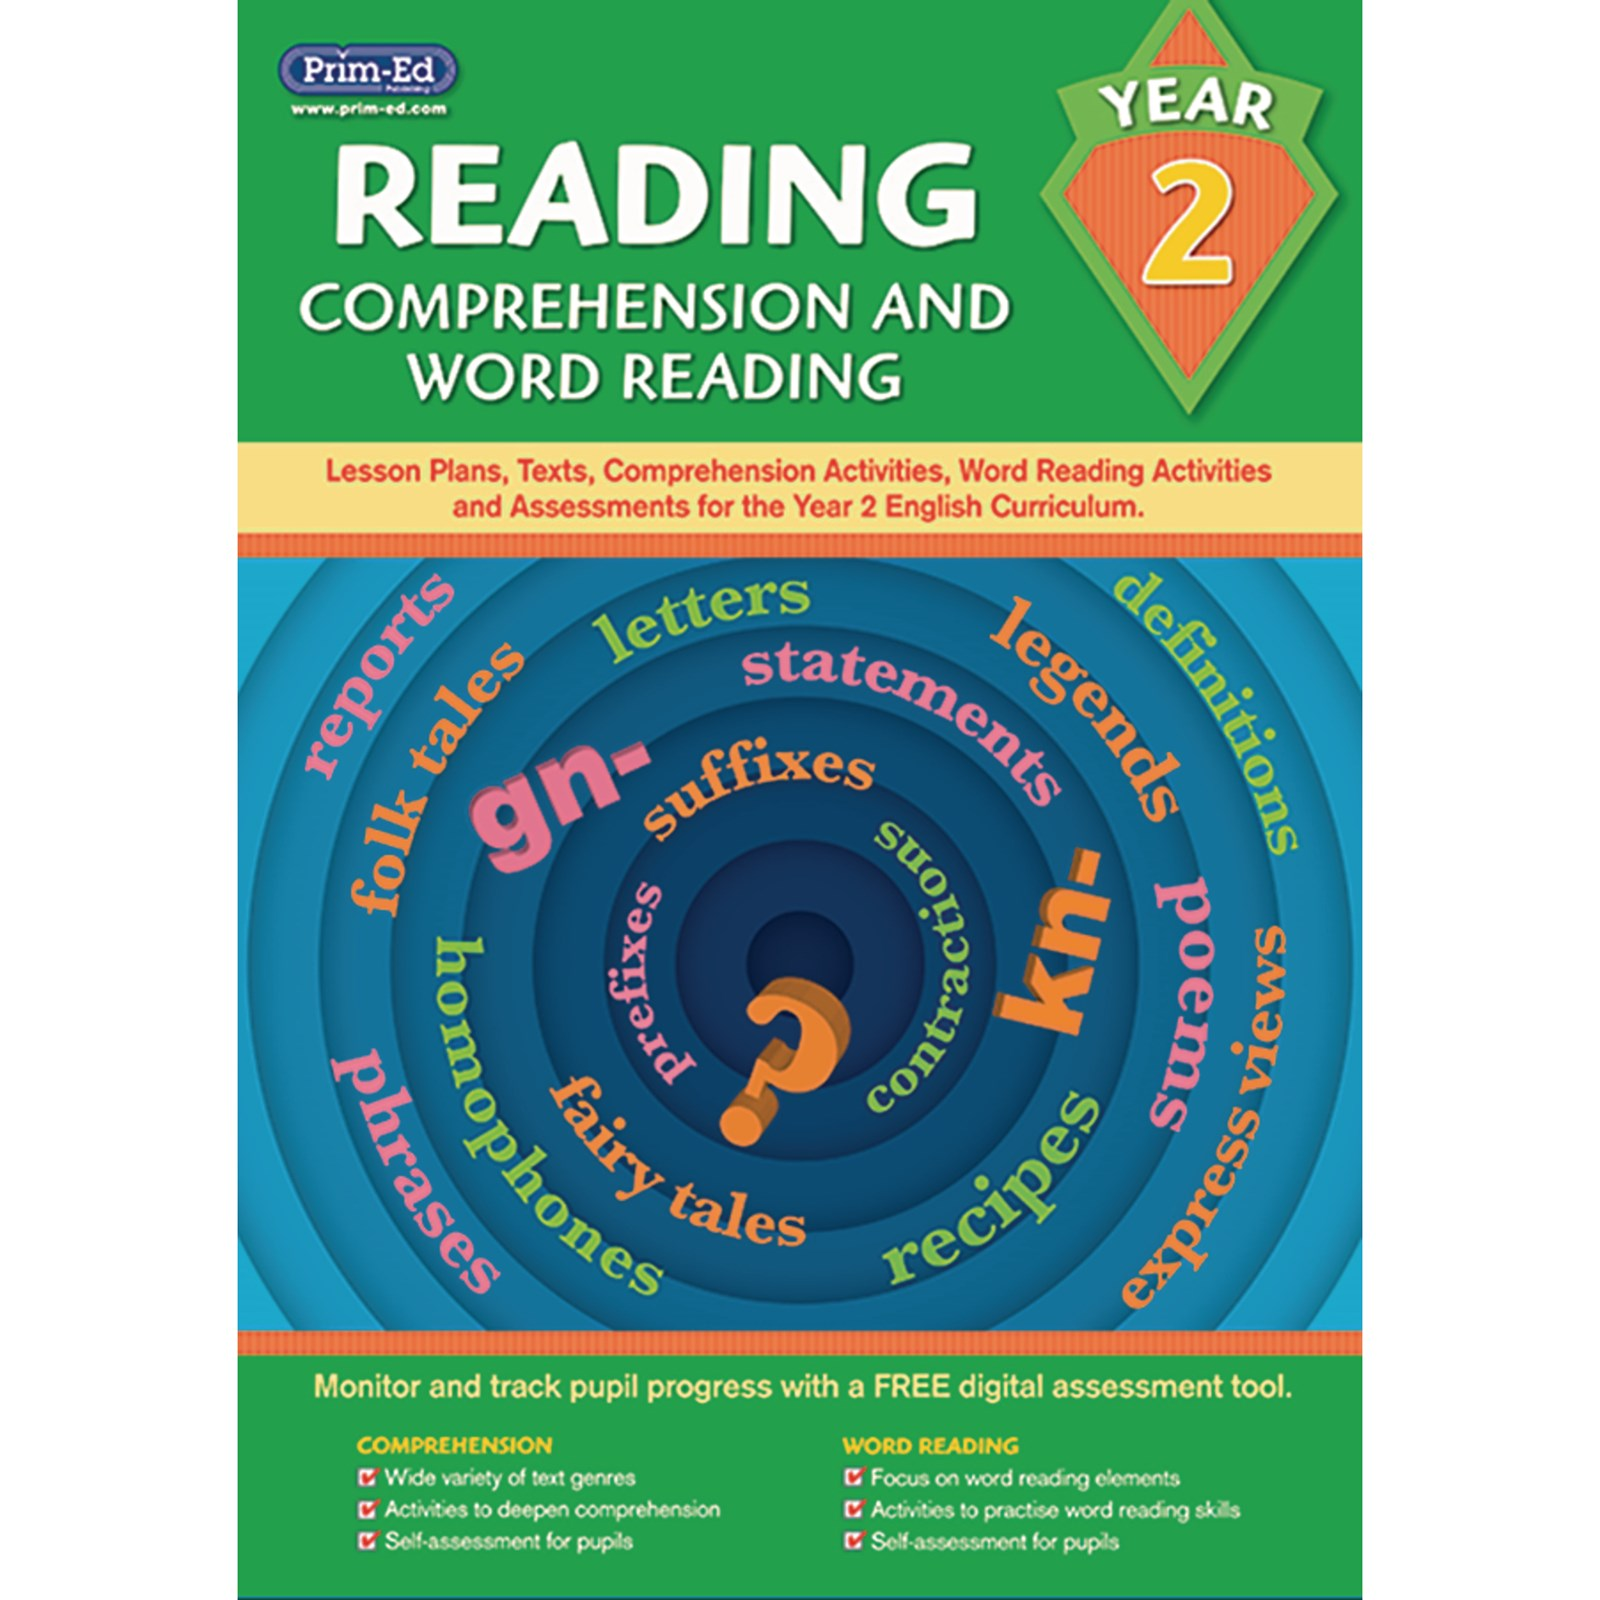 Comprehension and Word Reading Year 2